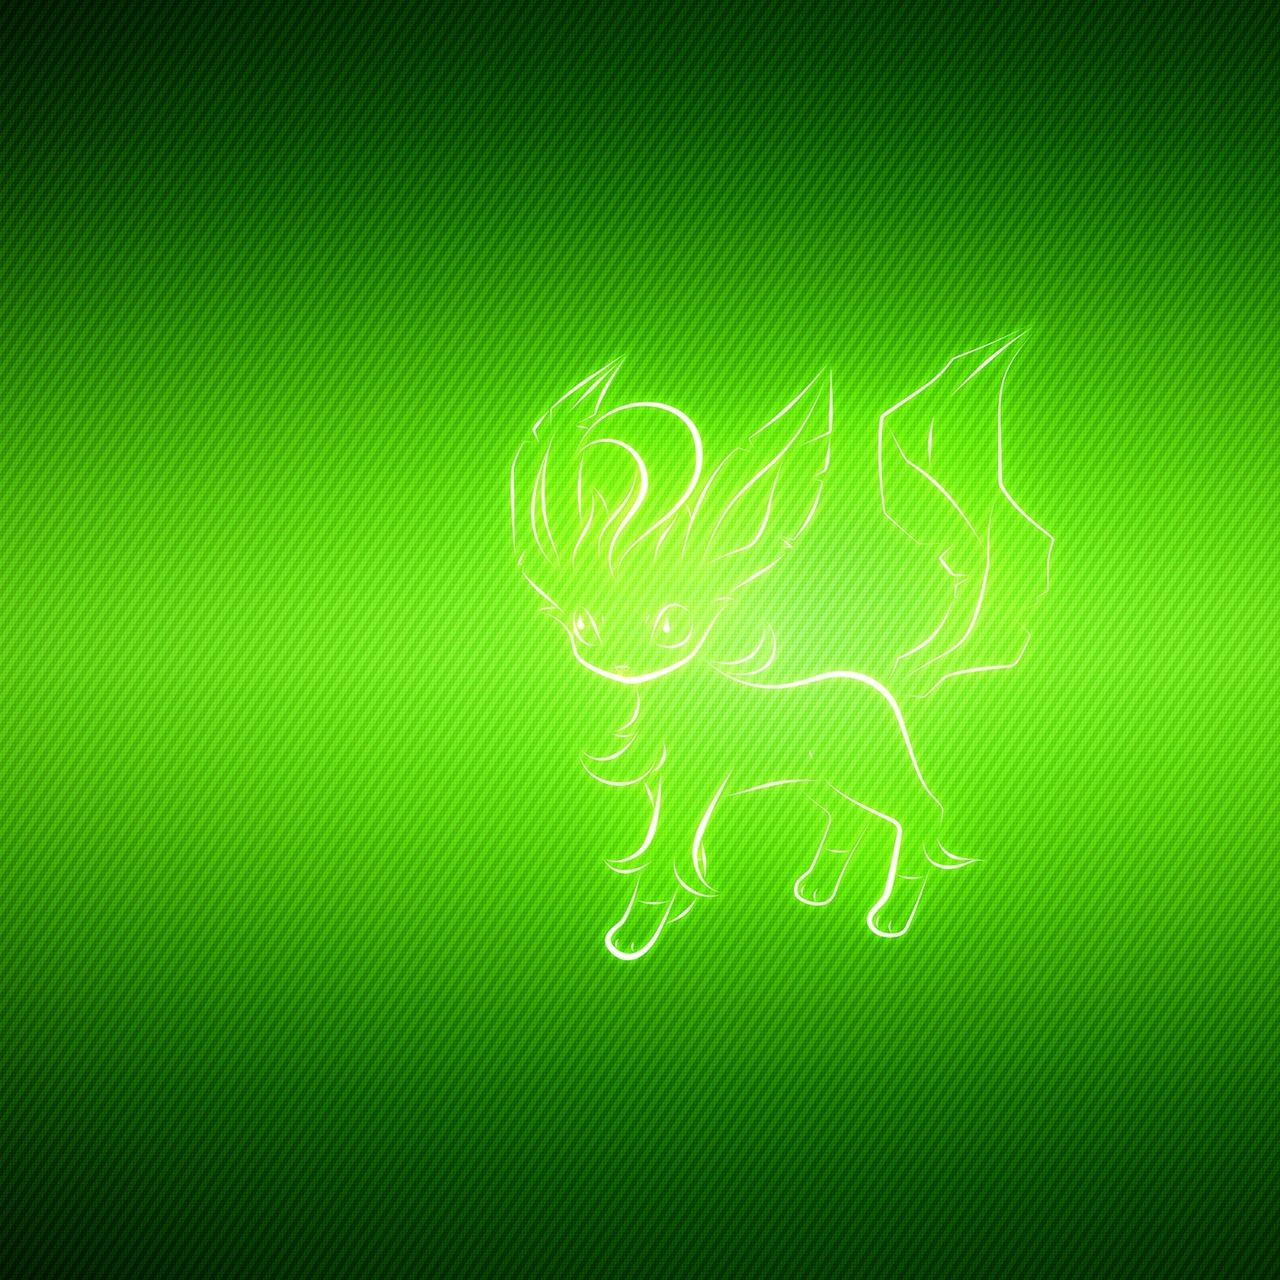 1280x1280 Download wallpaper 1280x1280 animal, pokemon, green, leafeon ipad ...